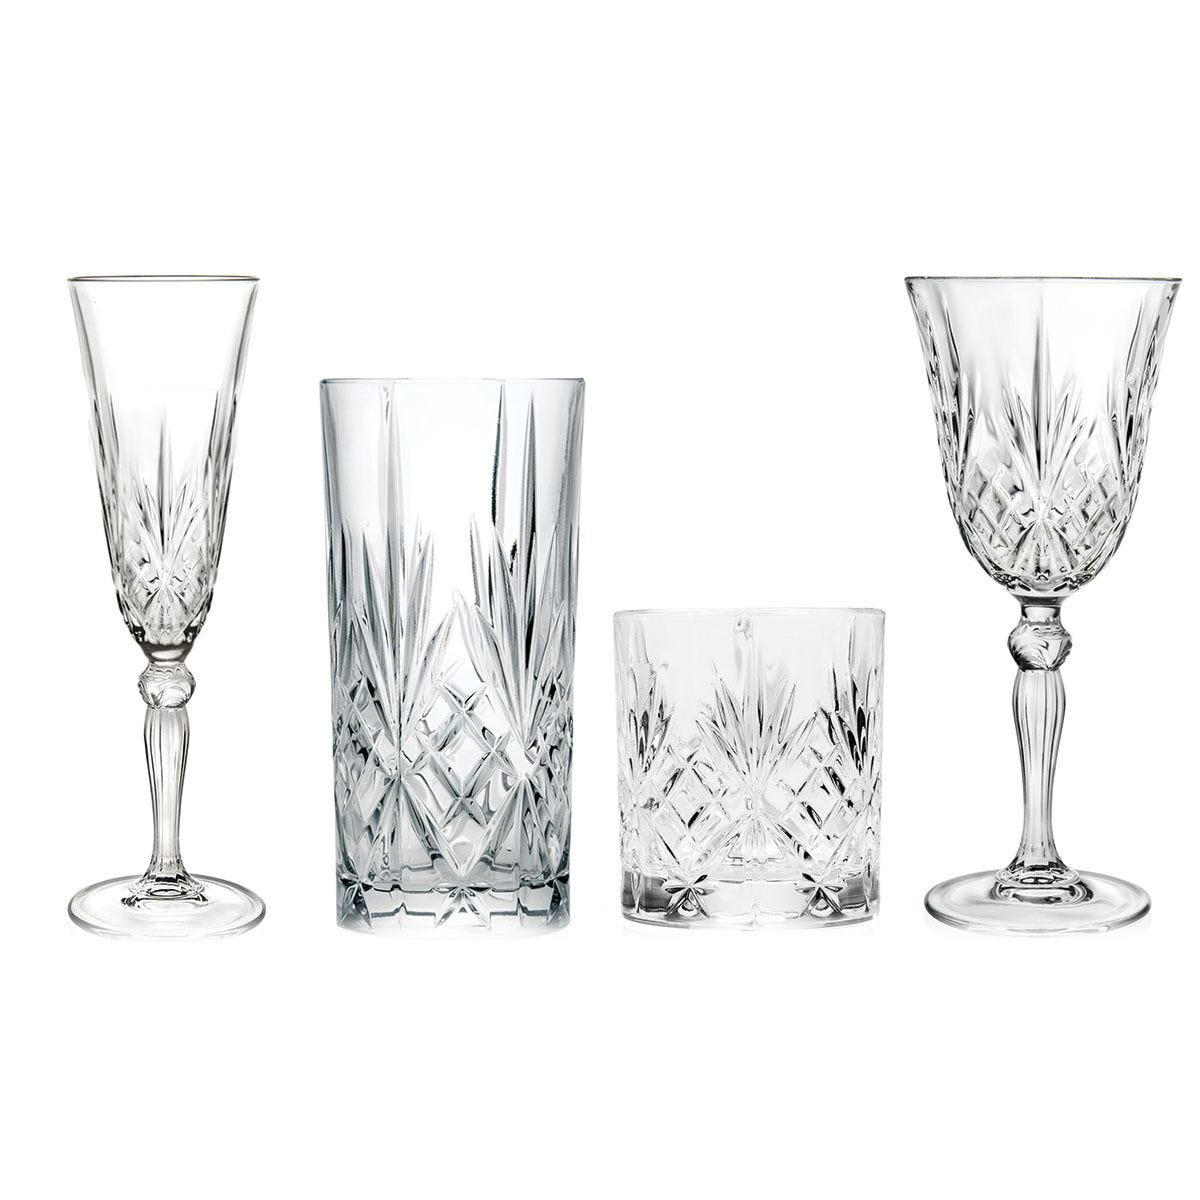 Rcr Melodia Luxion Crystal Drinkware Collection 24 Piece Robert Dyas